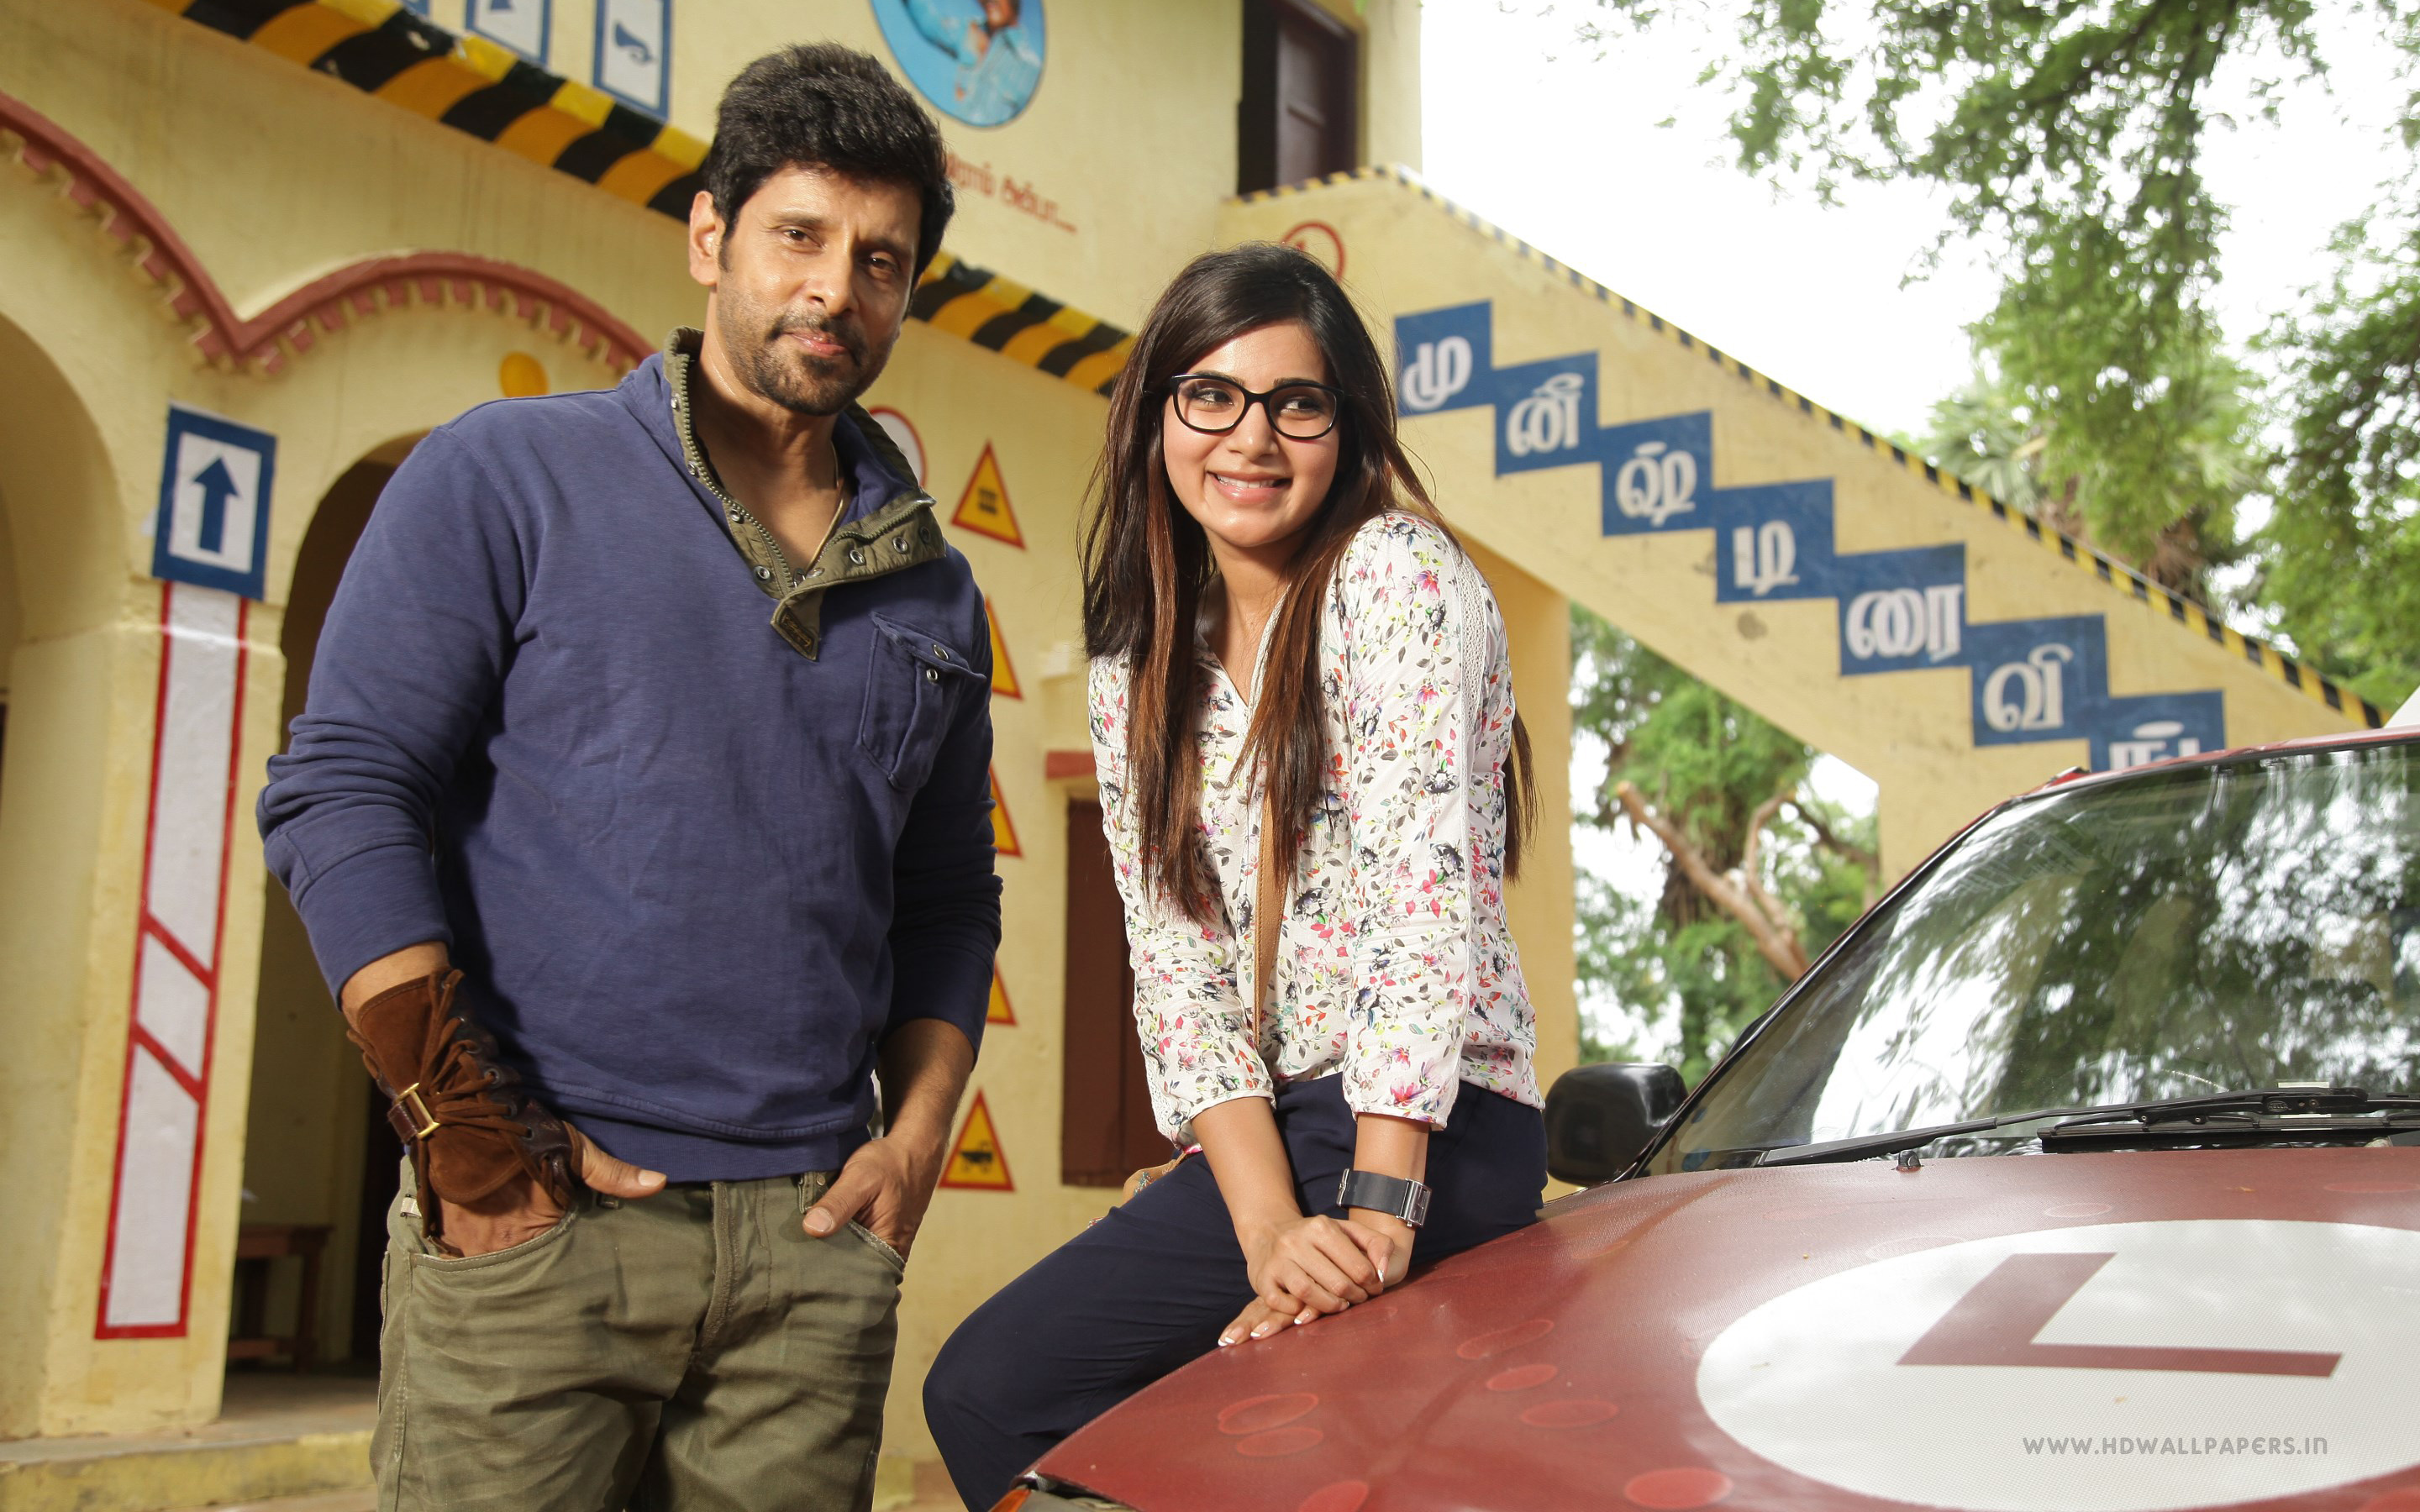 Endrathukulla Tamil Movie wallpaper